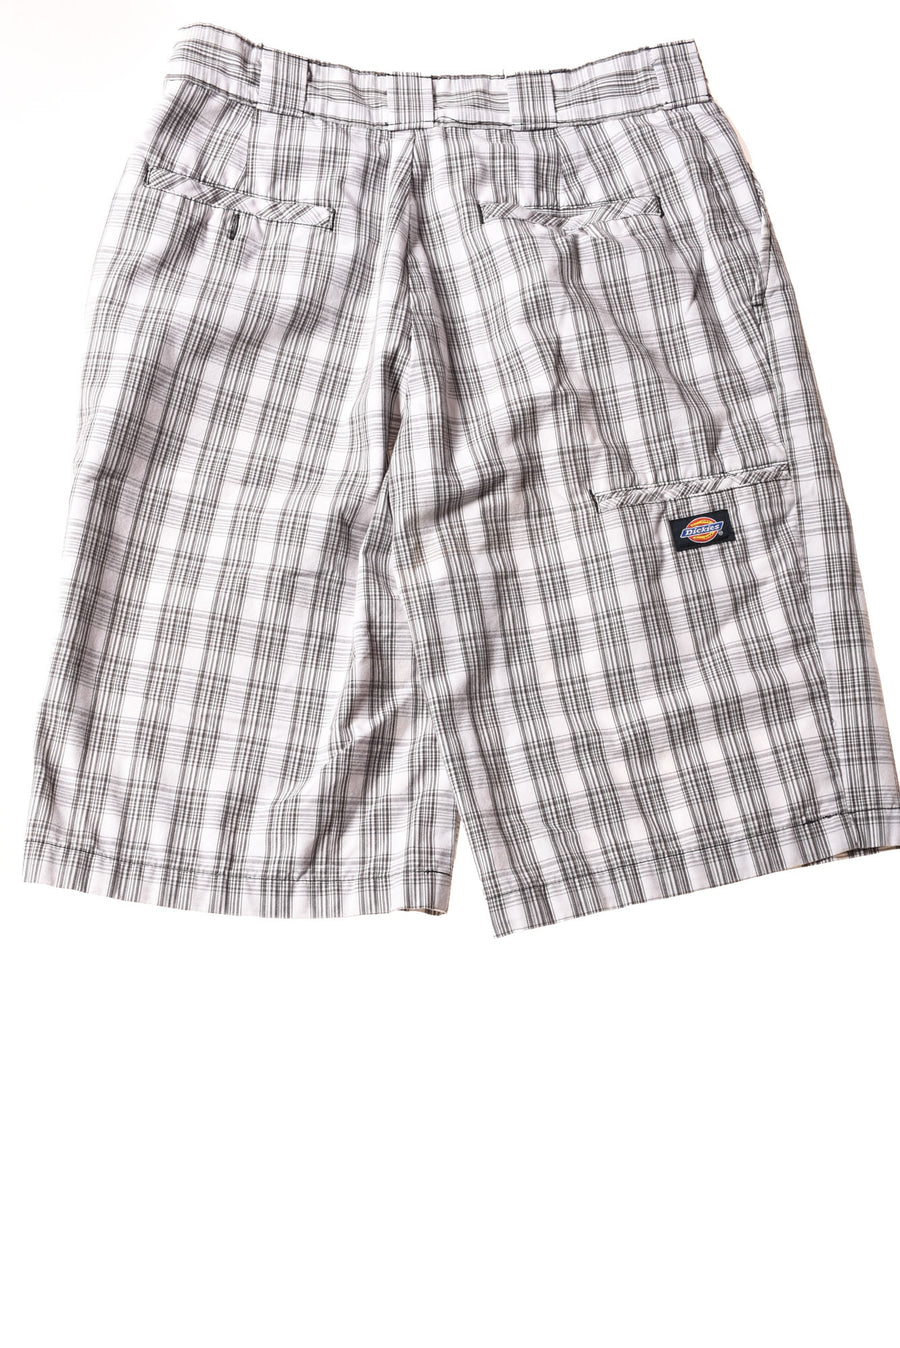 USED Dickies Men's Shorts 30 Gray & White